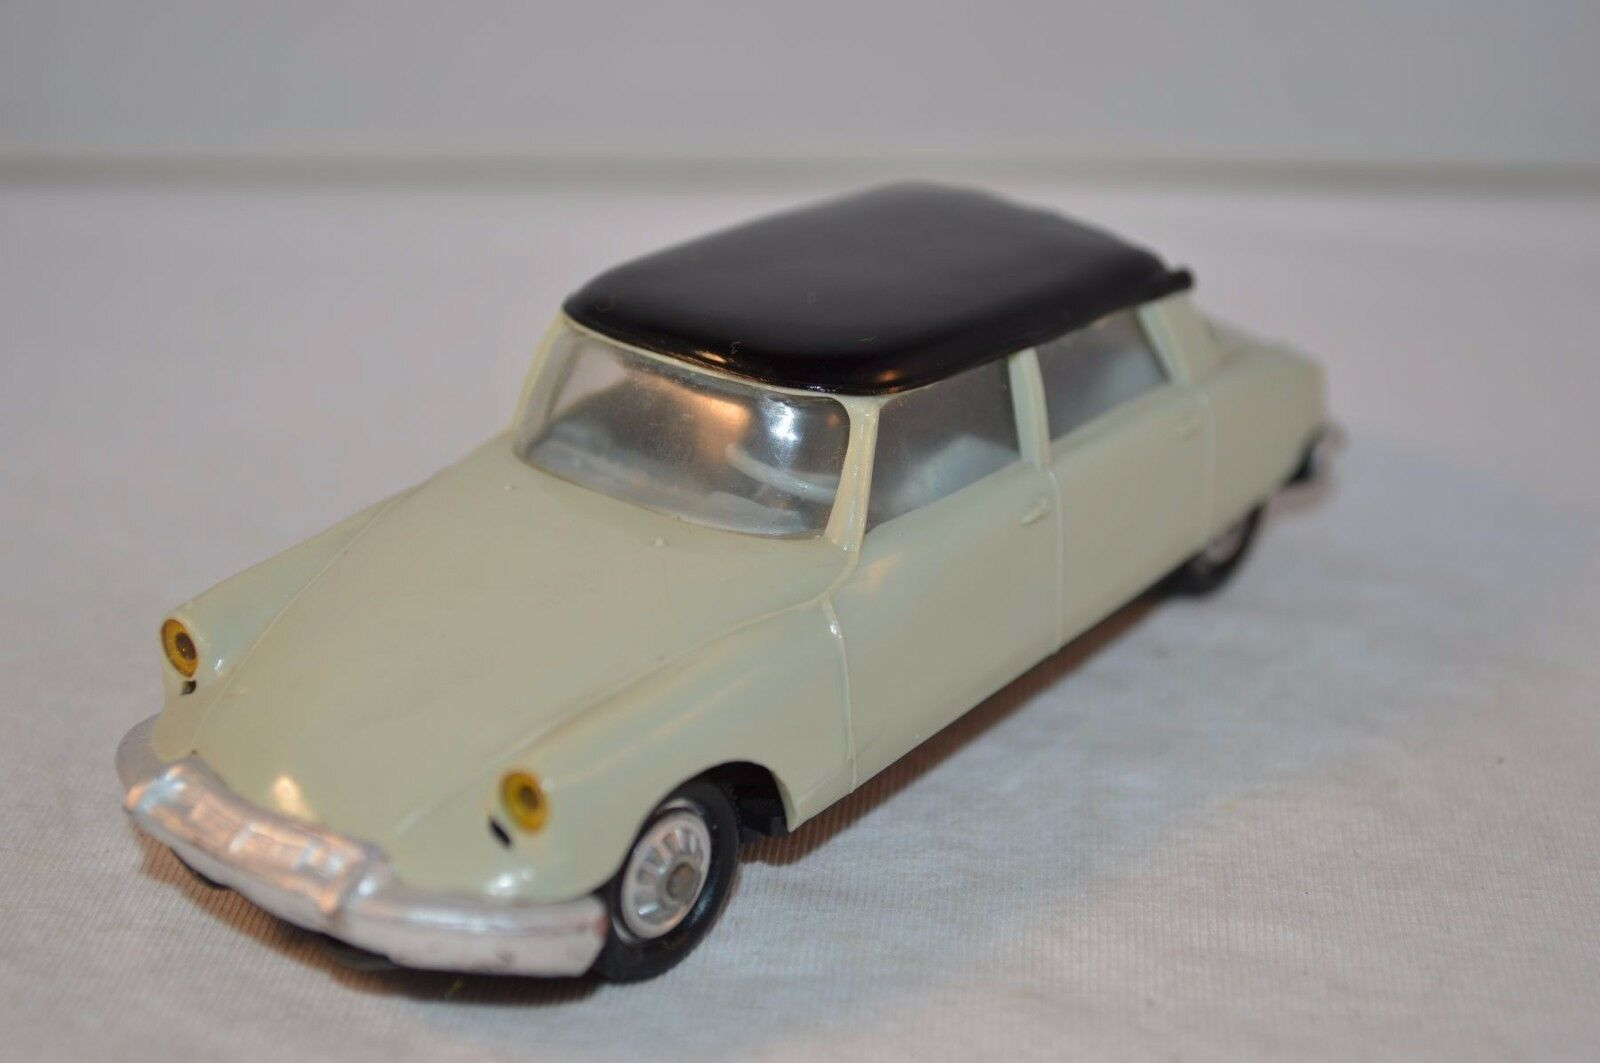 Norev 48 48 48 Citroen DS 19 SGDG plastique perfect mint all original condition SUPERB 3db3cc